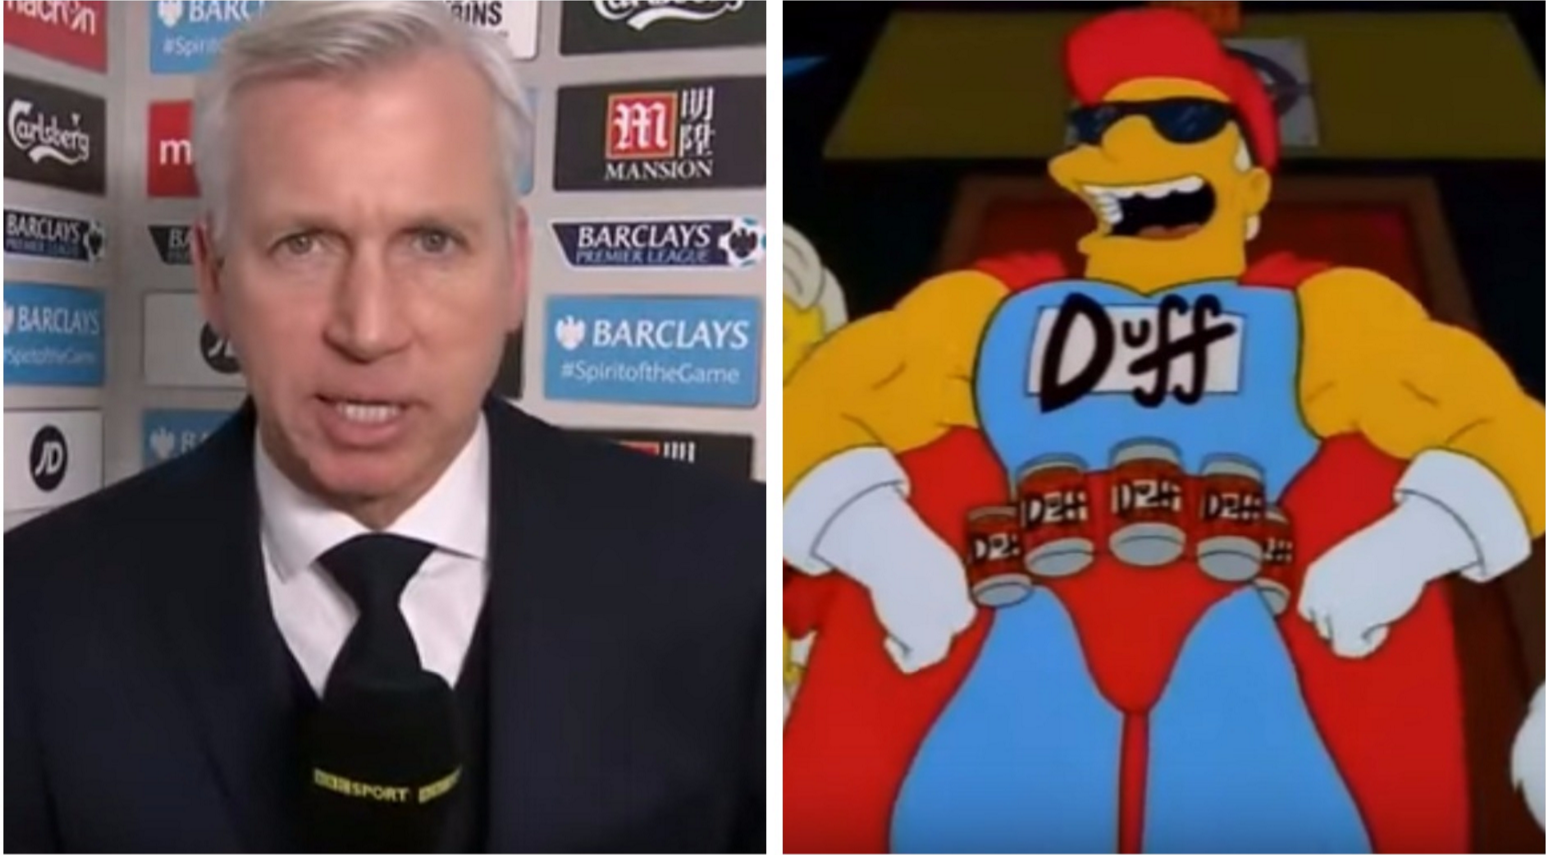 pardew and duffman